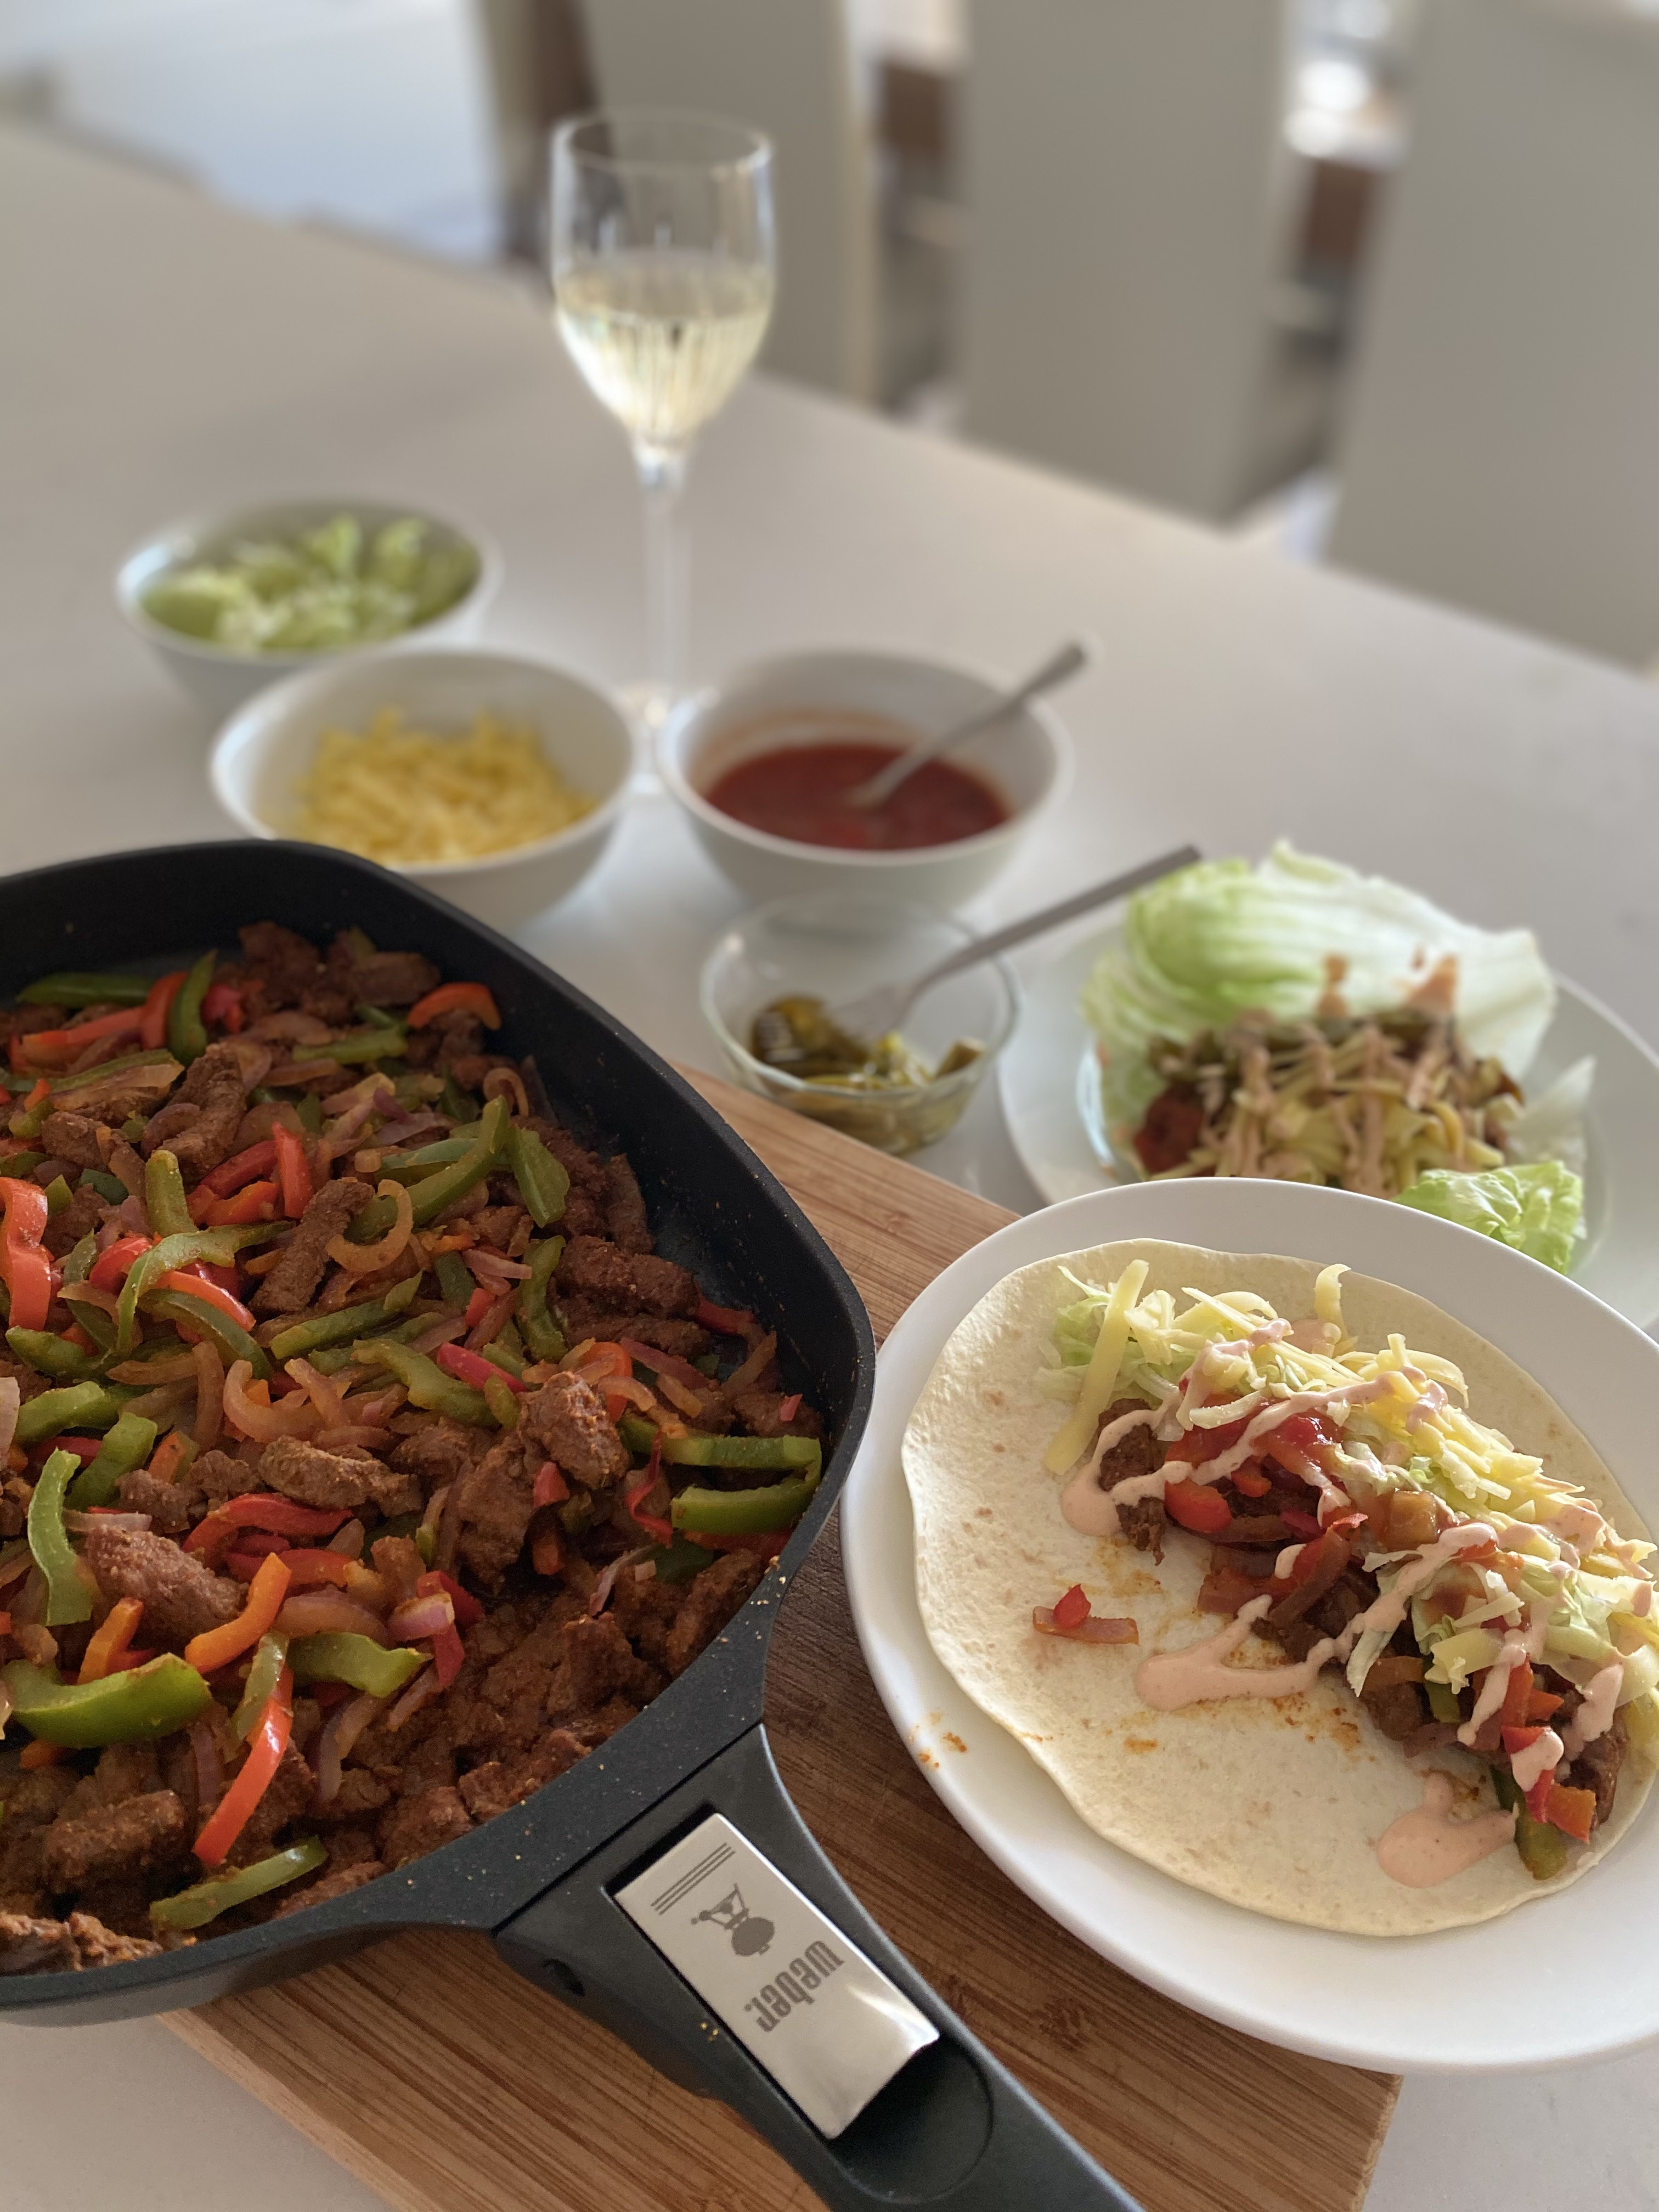 Geoff Maddern's recipe for the best fajitas you'll ever have